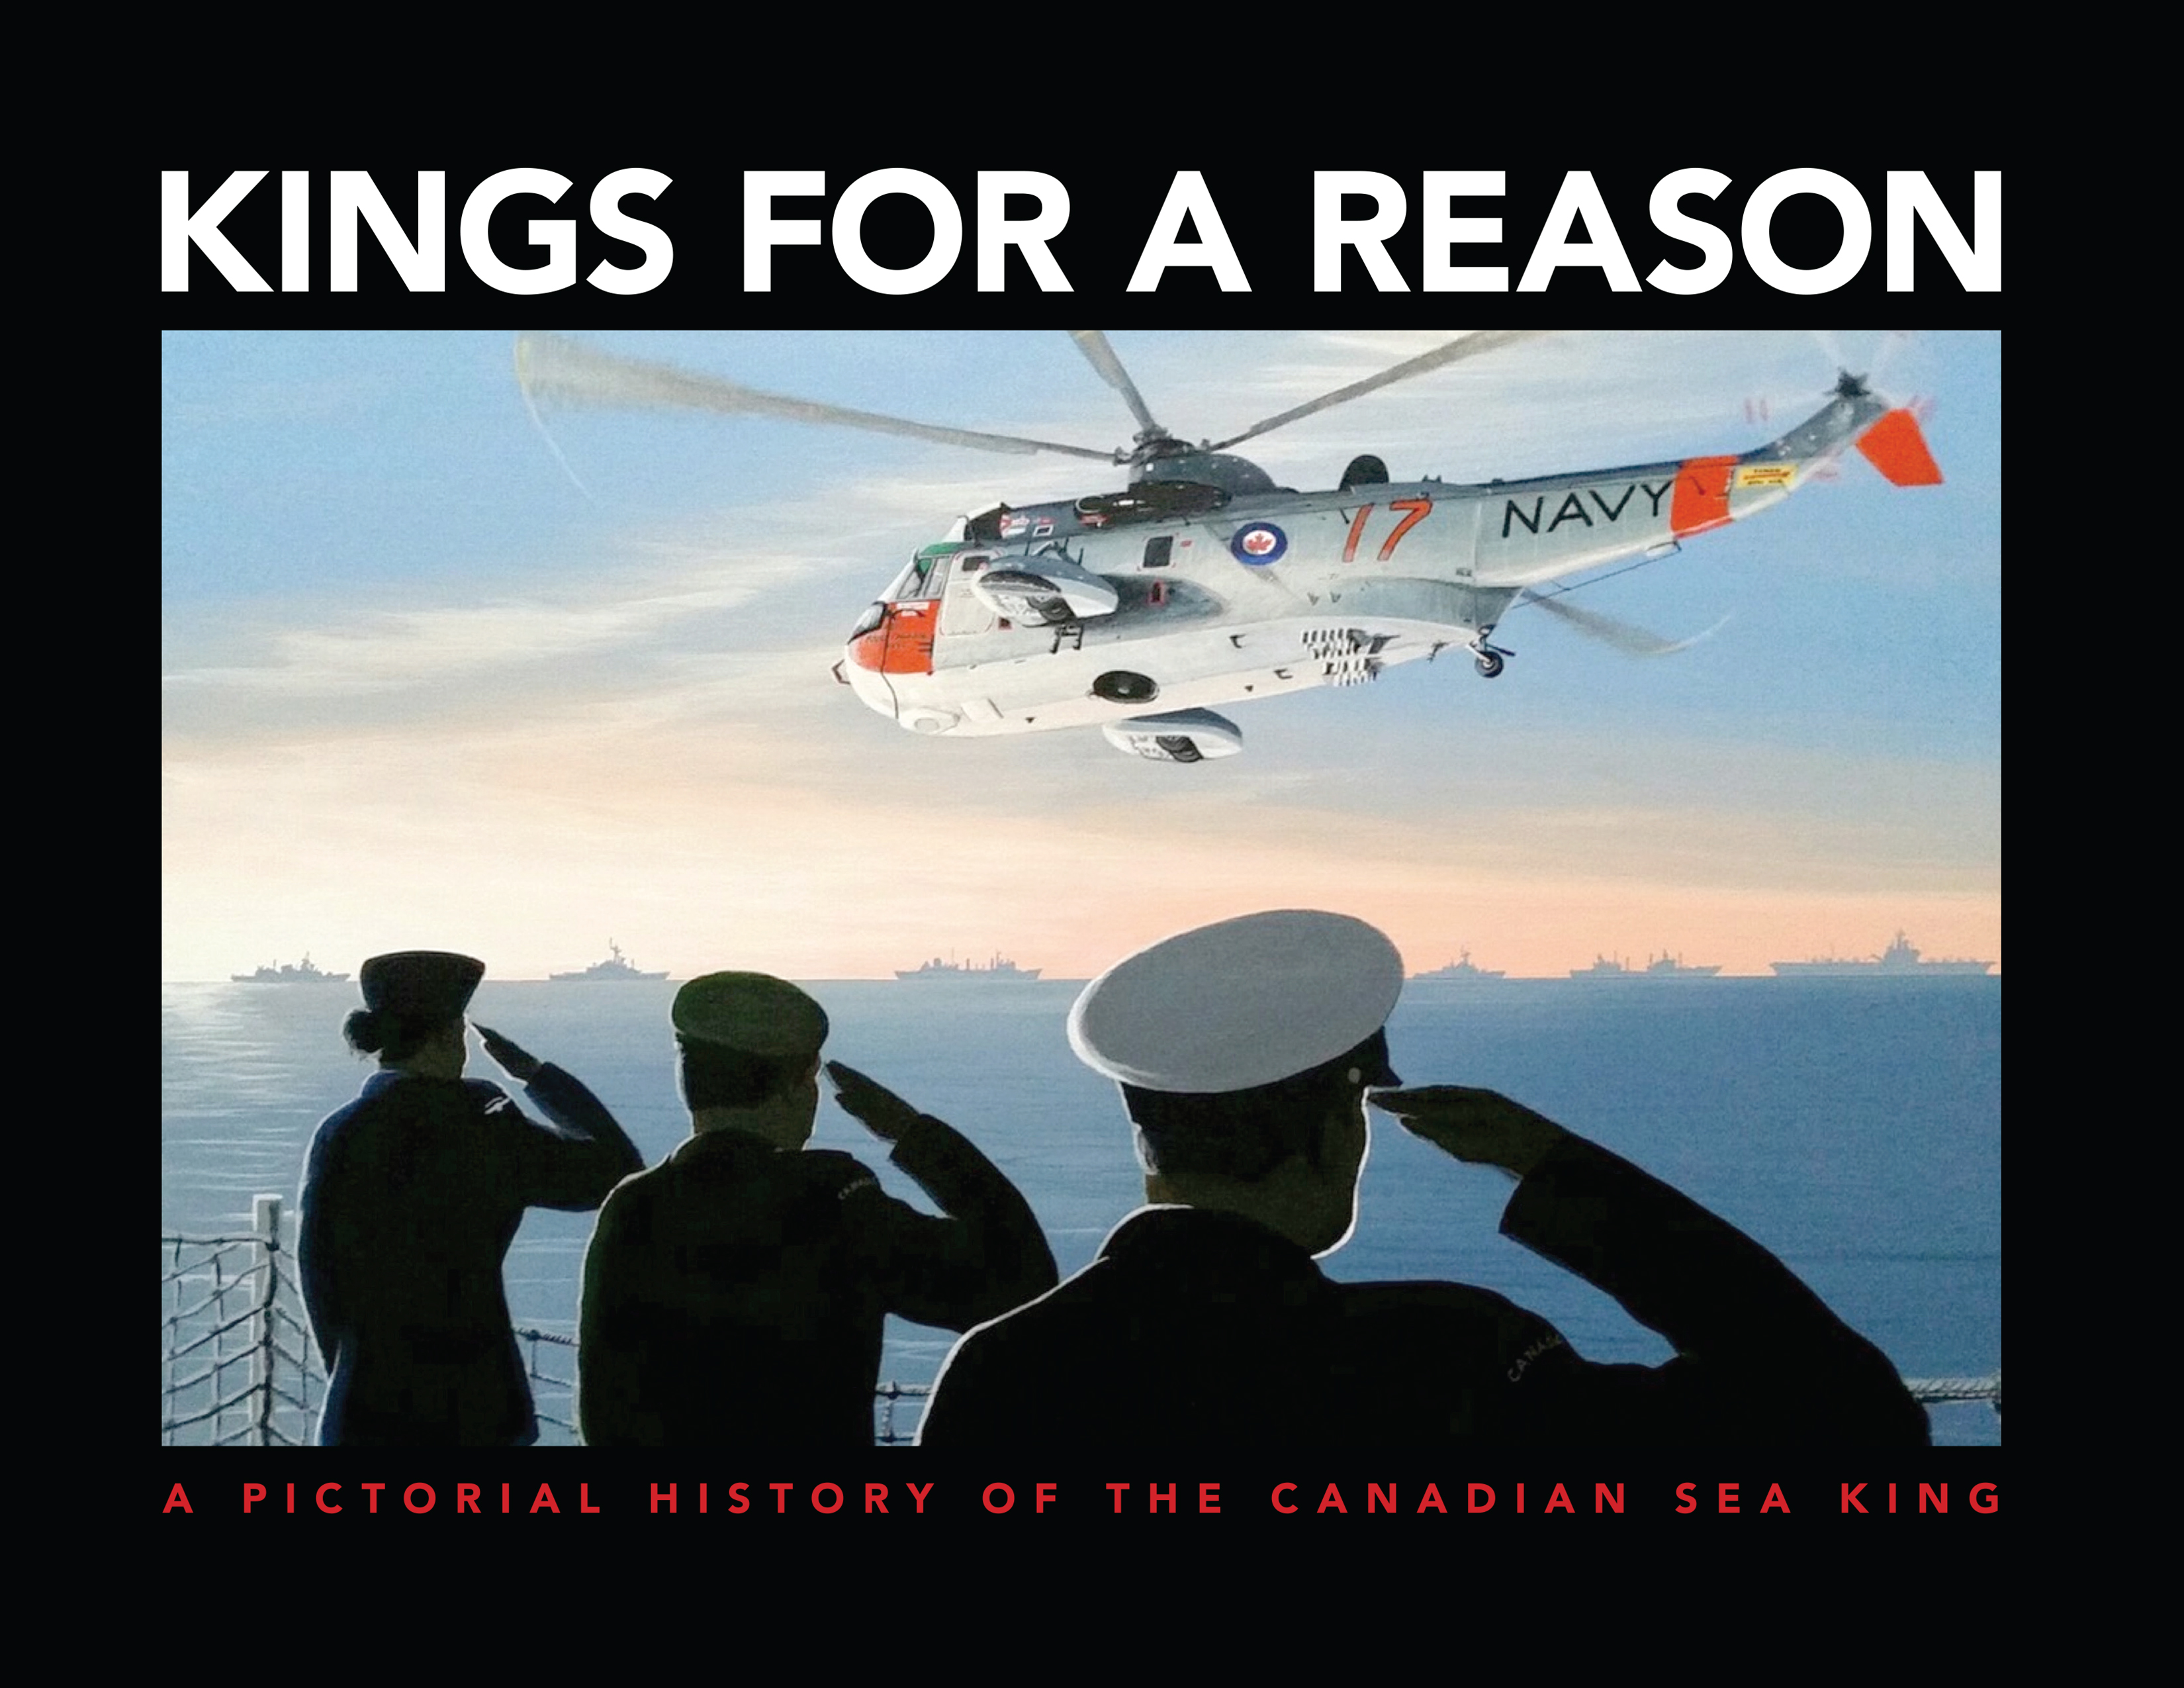 Kings For a Reason: A Pictorial History of the Canadian Sea King 1963-2018